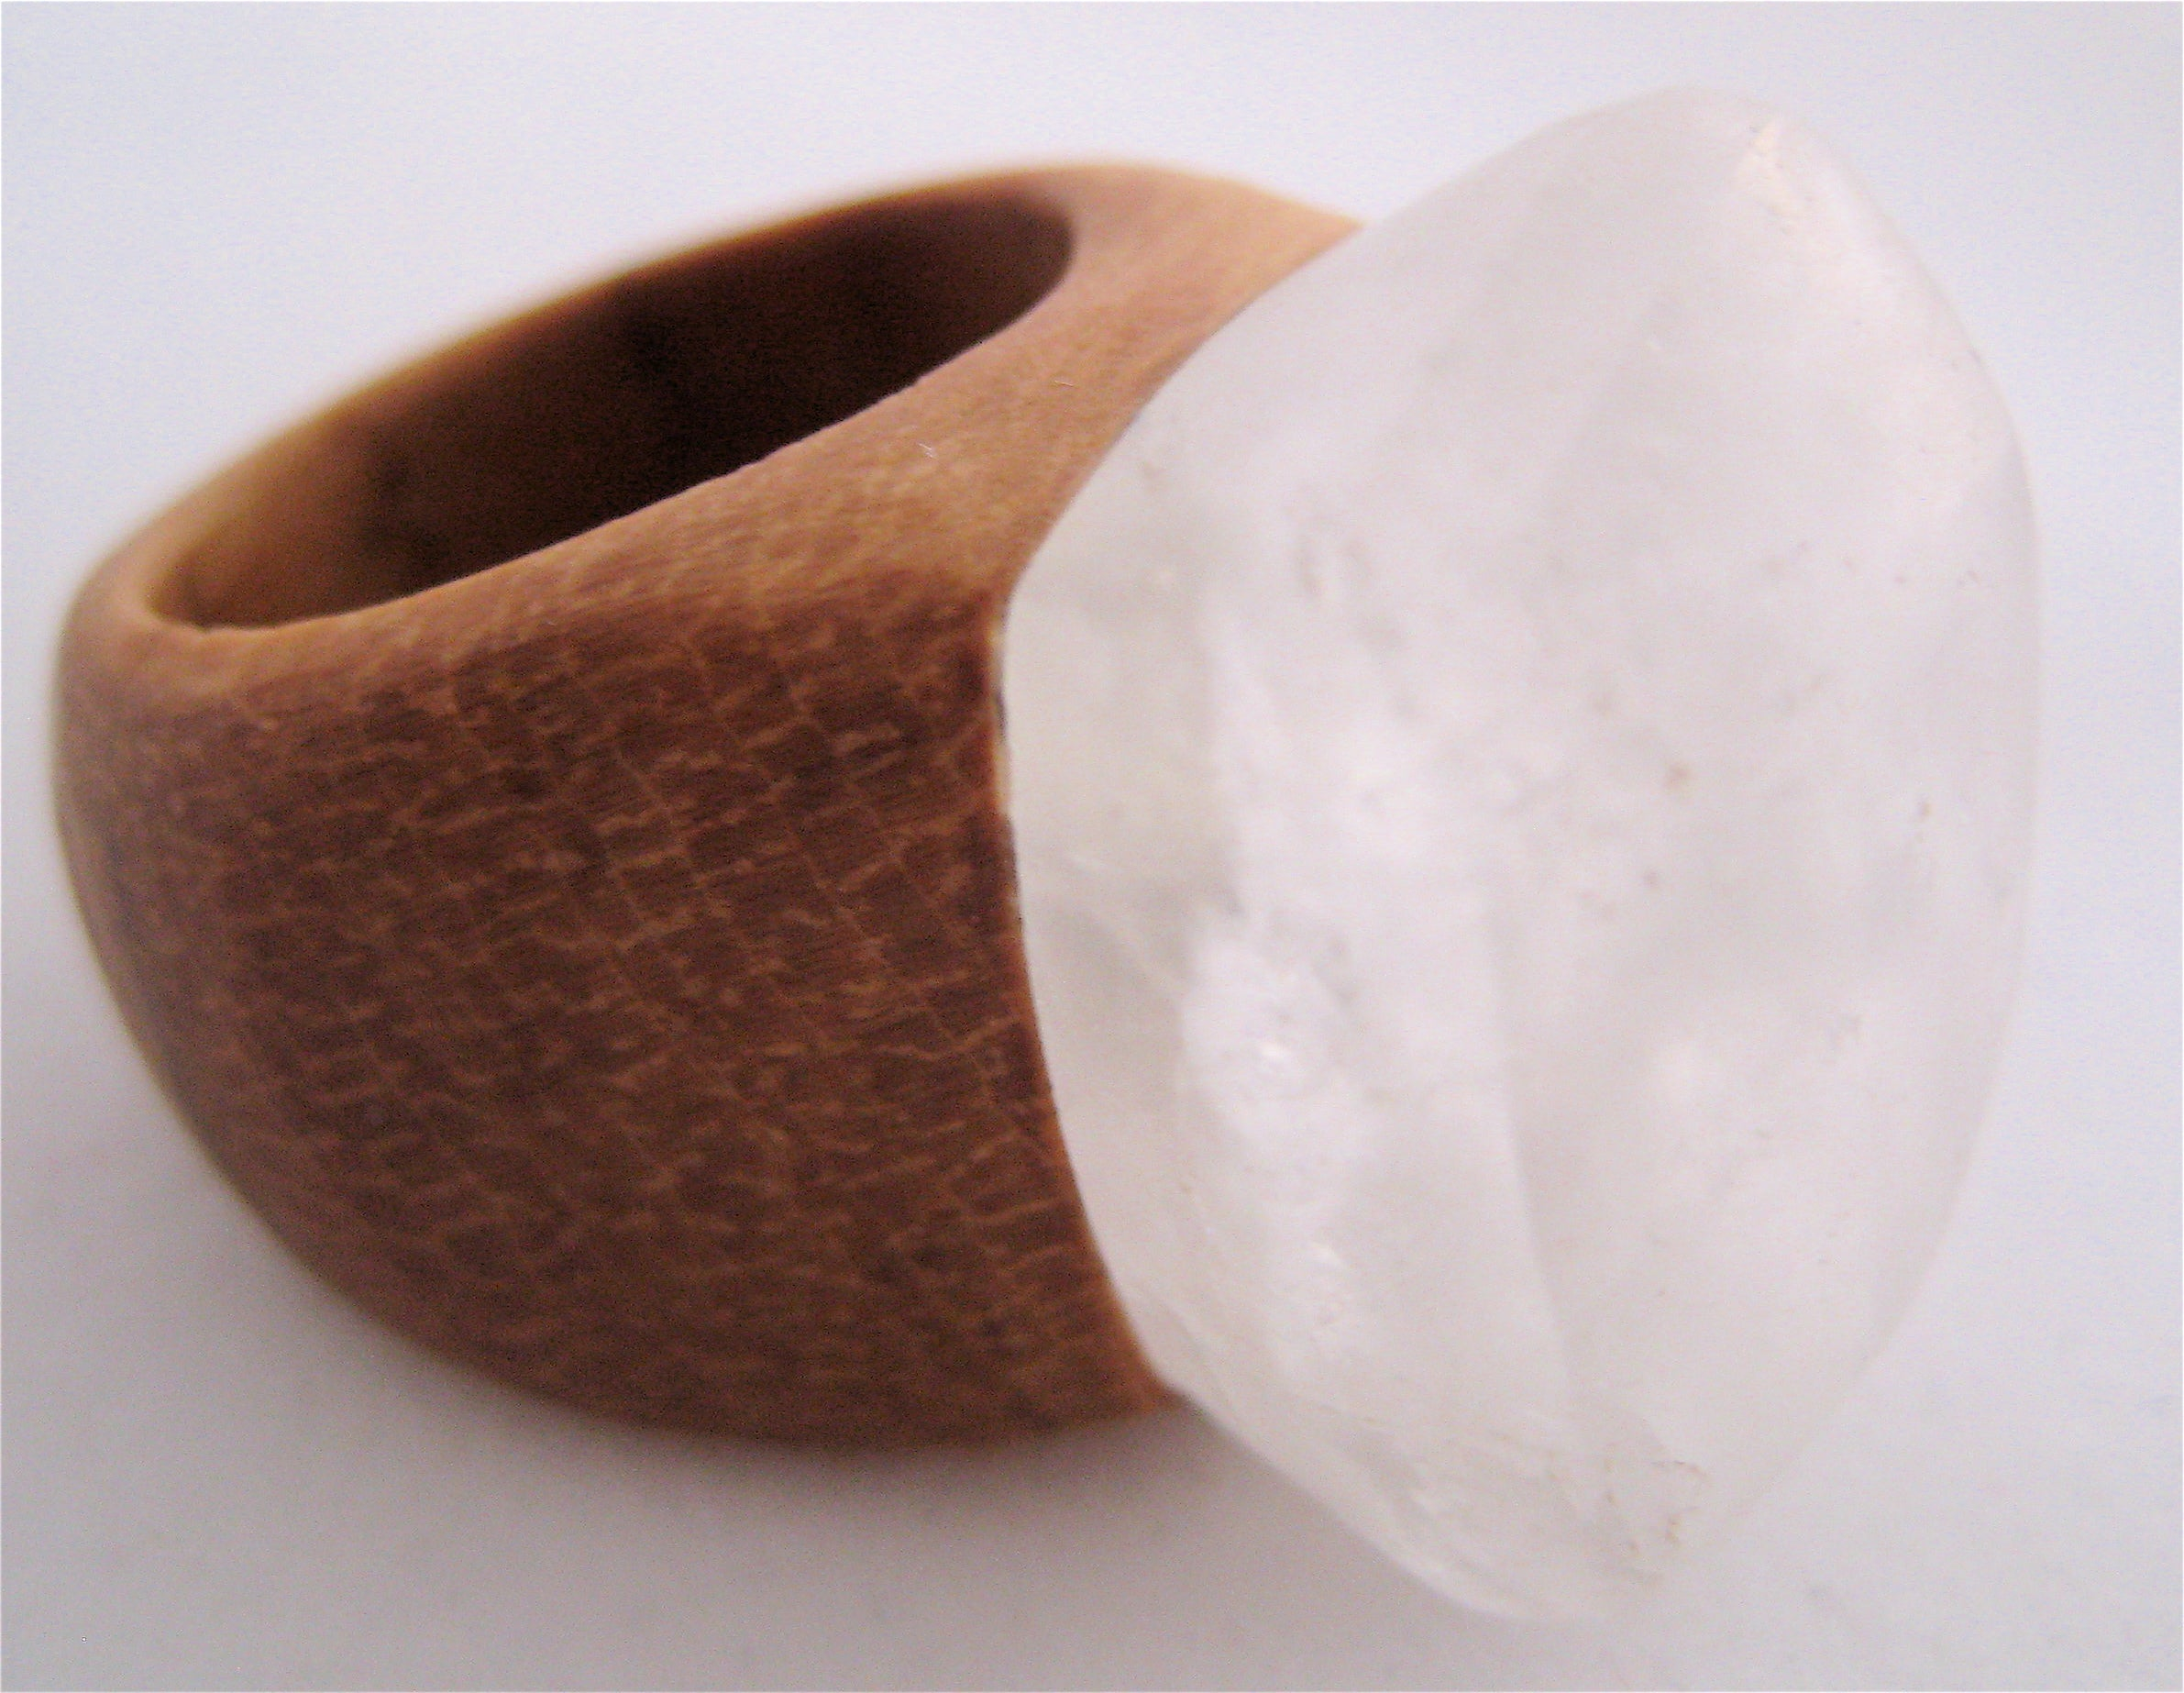 CRYSTAL & WOOD ring - XL DIAMOND setting